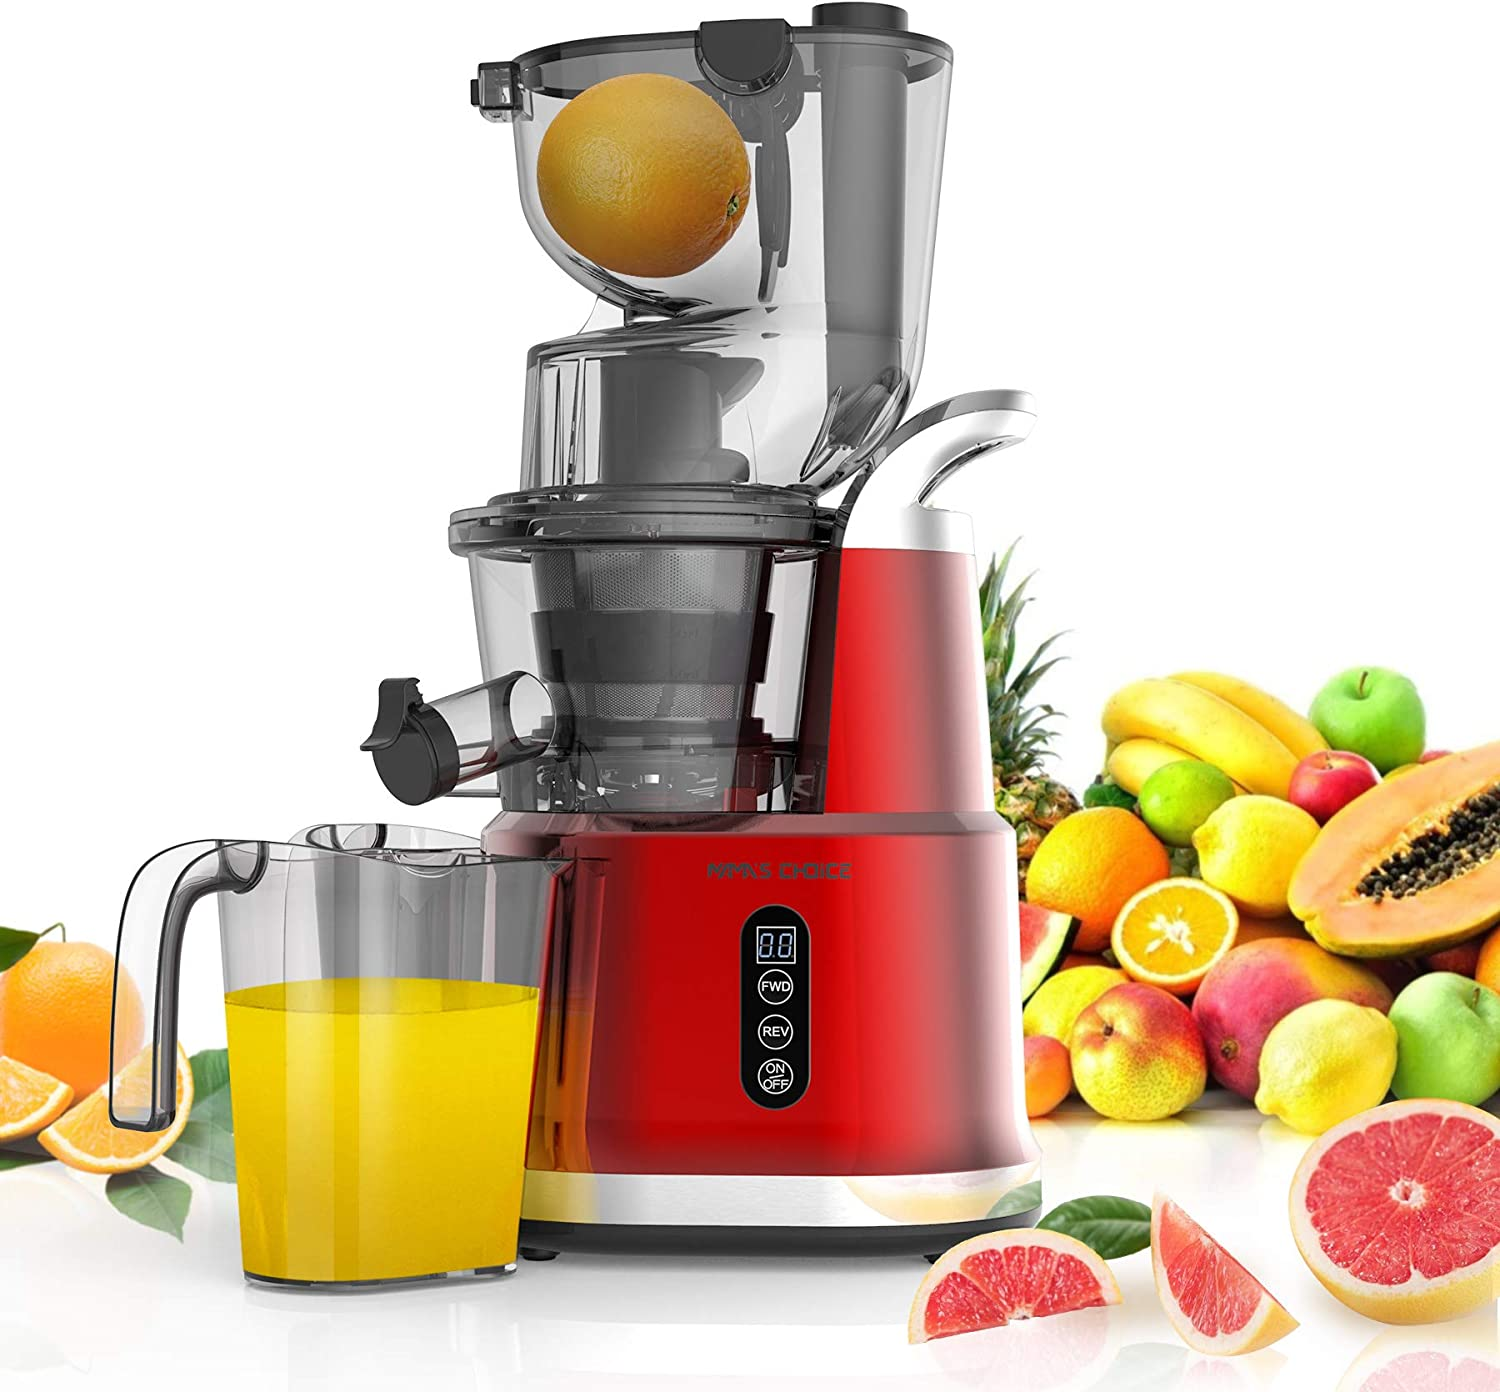 MAMA'S CHOICESlowJuicer, SlowMasticatingJuicer Machine 82mmWideChutefor Vegetable Fruit,200W ColdPress JuicerExtractorwith Quiet Motor and Reverse Function, Included Brush for Easy Clean